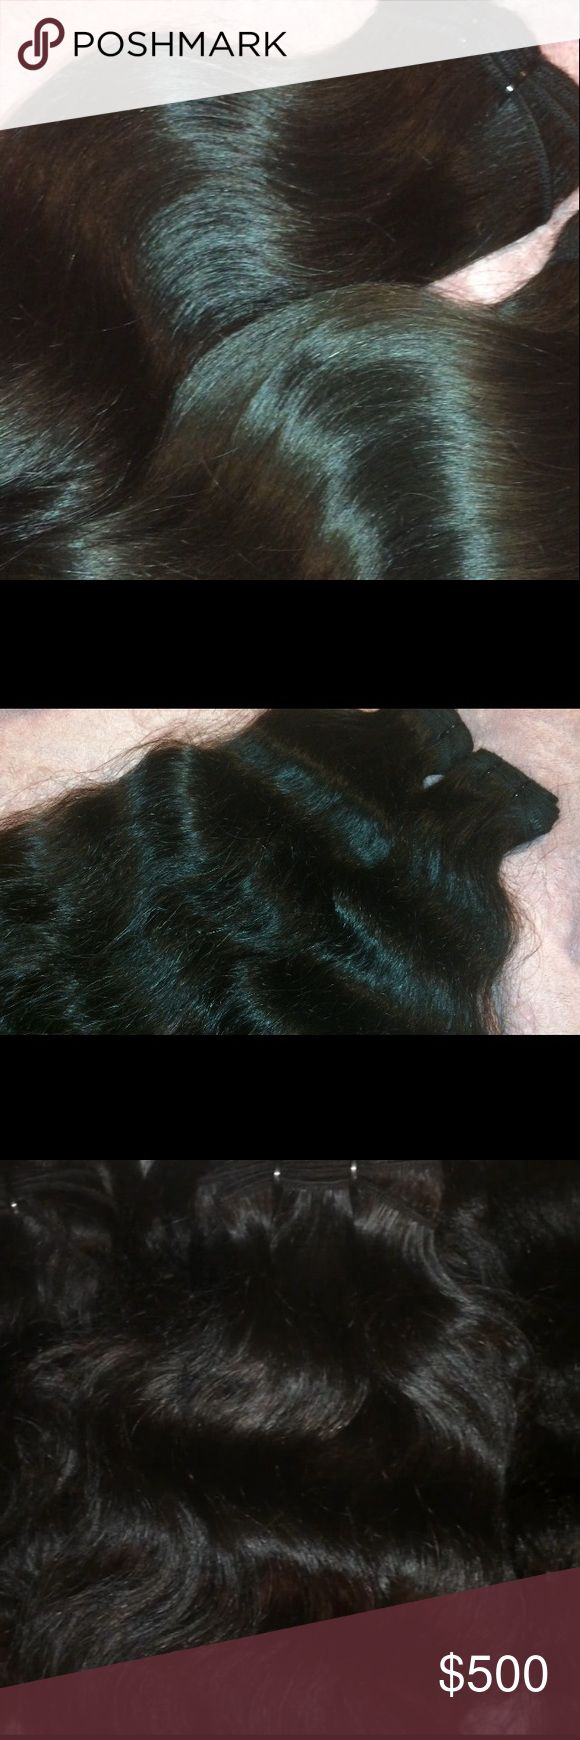 Raw Indian bundles from India 🇮🇳 Gorgeous raw Indian temple bundles! Lengths 12-24 of beautiful unprocessed hair!!! It doesn't get much better than this!! Natural color, no dyes or chemicals! Raw hair comes in different shades and wave patterns, no 2 bundles are alike! Get your bundles now👍🏽😍🙌🏽 these are the actual pictures of the hair😜🤗 Email me at kmdavis312@comcast.net for prices and more details🤗 Raw/unprocessed Accessories Hair Accessories